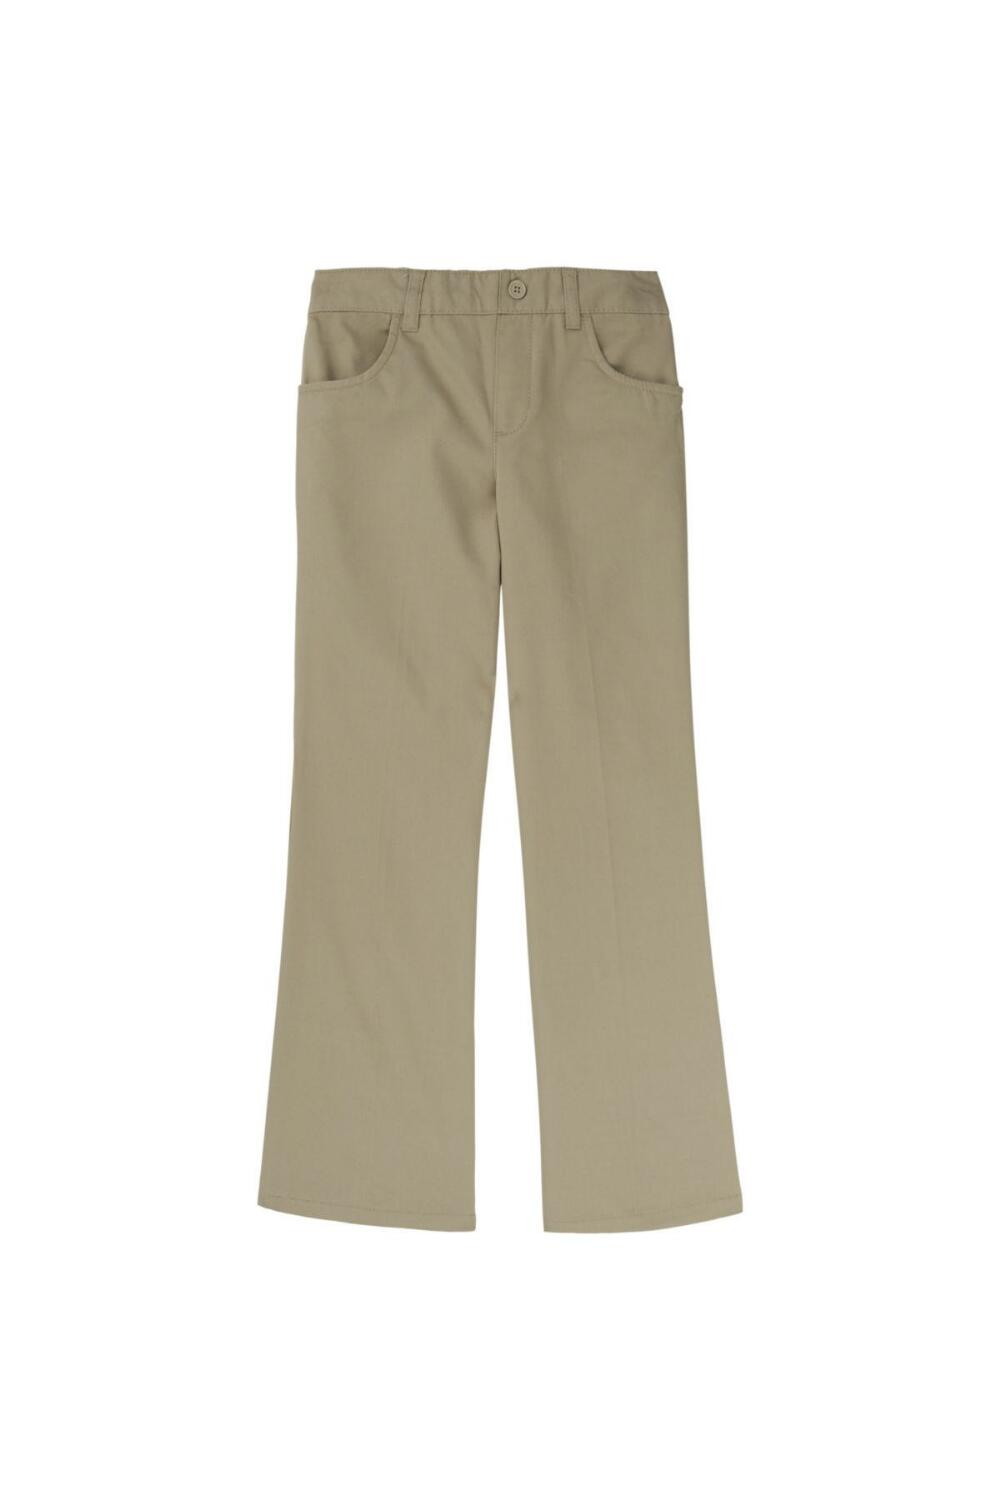 French Toast Girl's Straight Leg Twill Pant (Pant Color: Khaki, Pant Size: Size 4T)